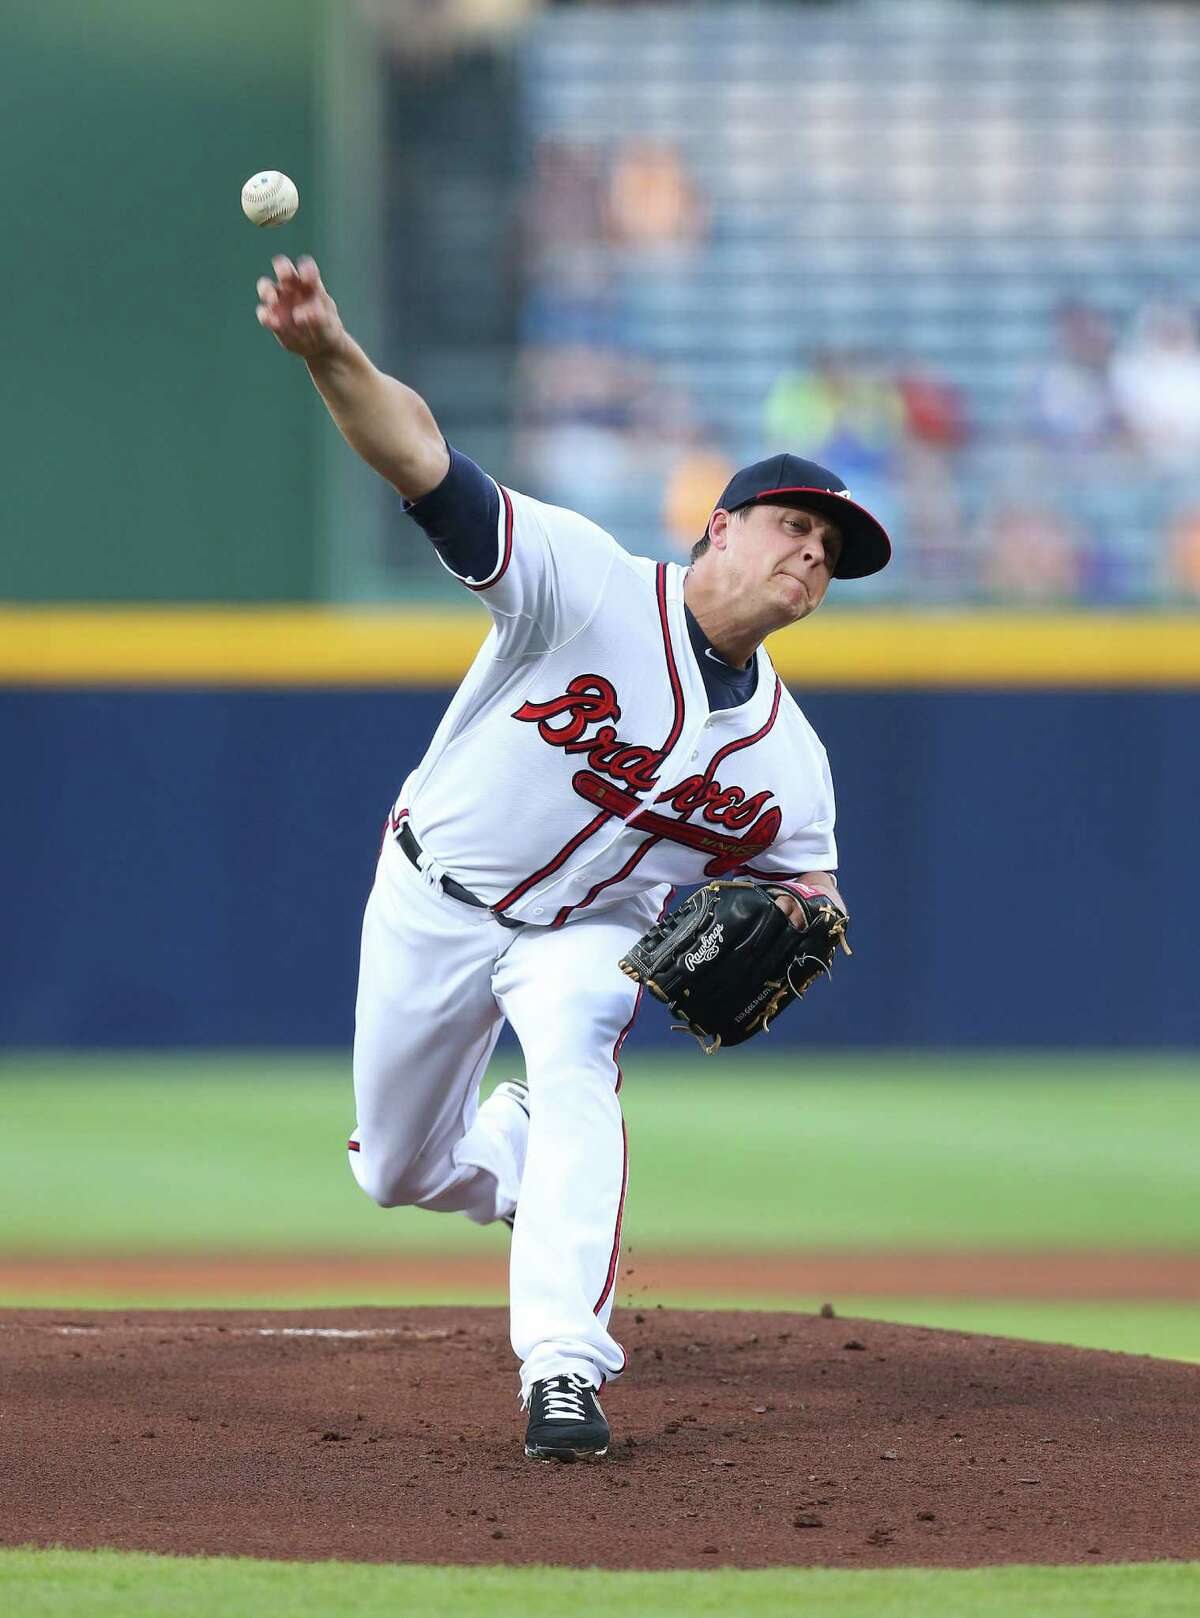 ATLANTA, GA - SEPTEMBER 03: Pitcher Kris Medlen #54 of the Atlanta Braves throws a pitch during the game against the New York Mets at Turner Field on September 3, 2013 in Atlanta, Georgia. (Photo by Mike Zarrilli/Getty Images) ORG XMIT: 163495343